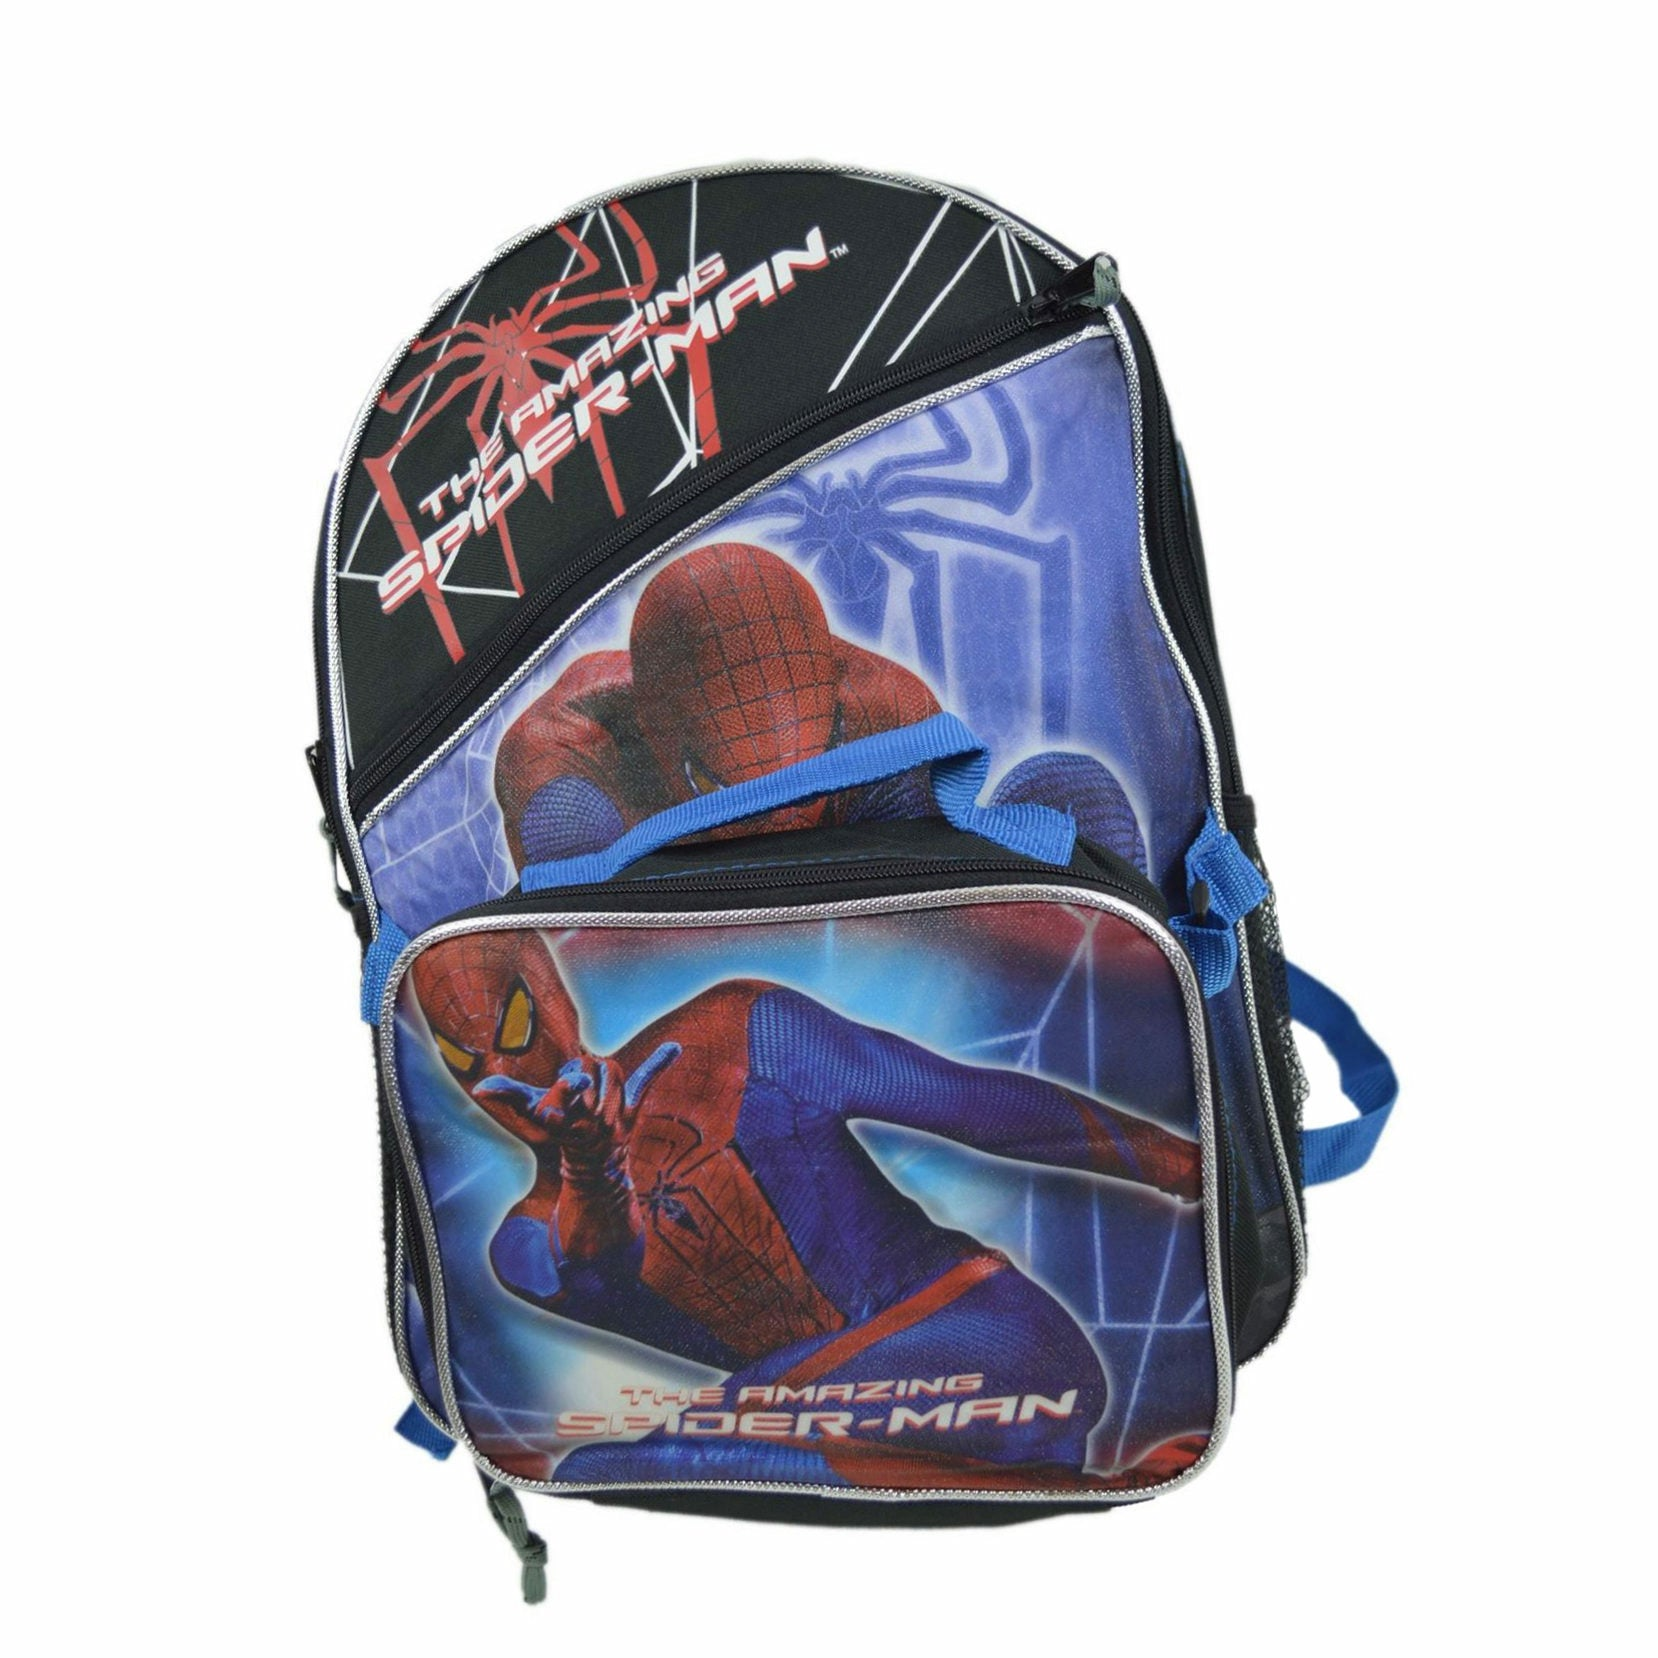 Marvel The Amazing Spider-Man Backpack with Detachable Lunch Bag